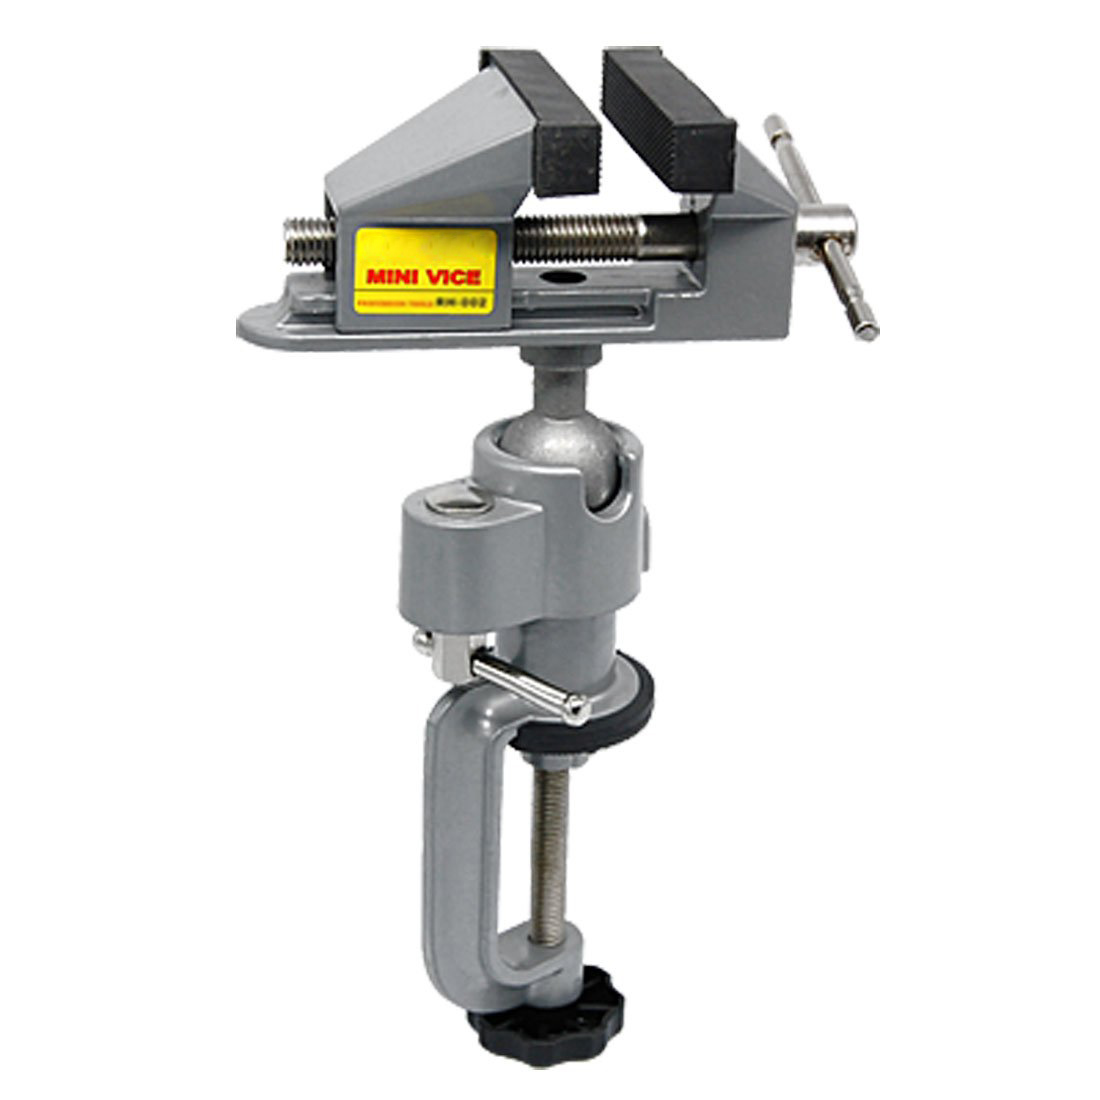 Mini Clamp-On Bench Jewellers Hobby Craft Vice Tool image